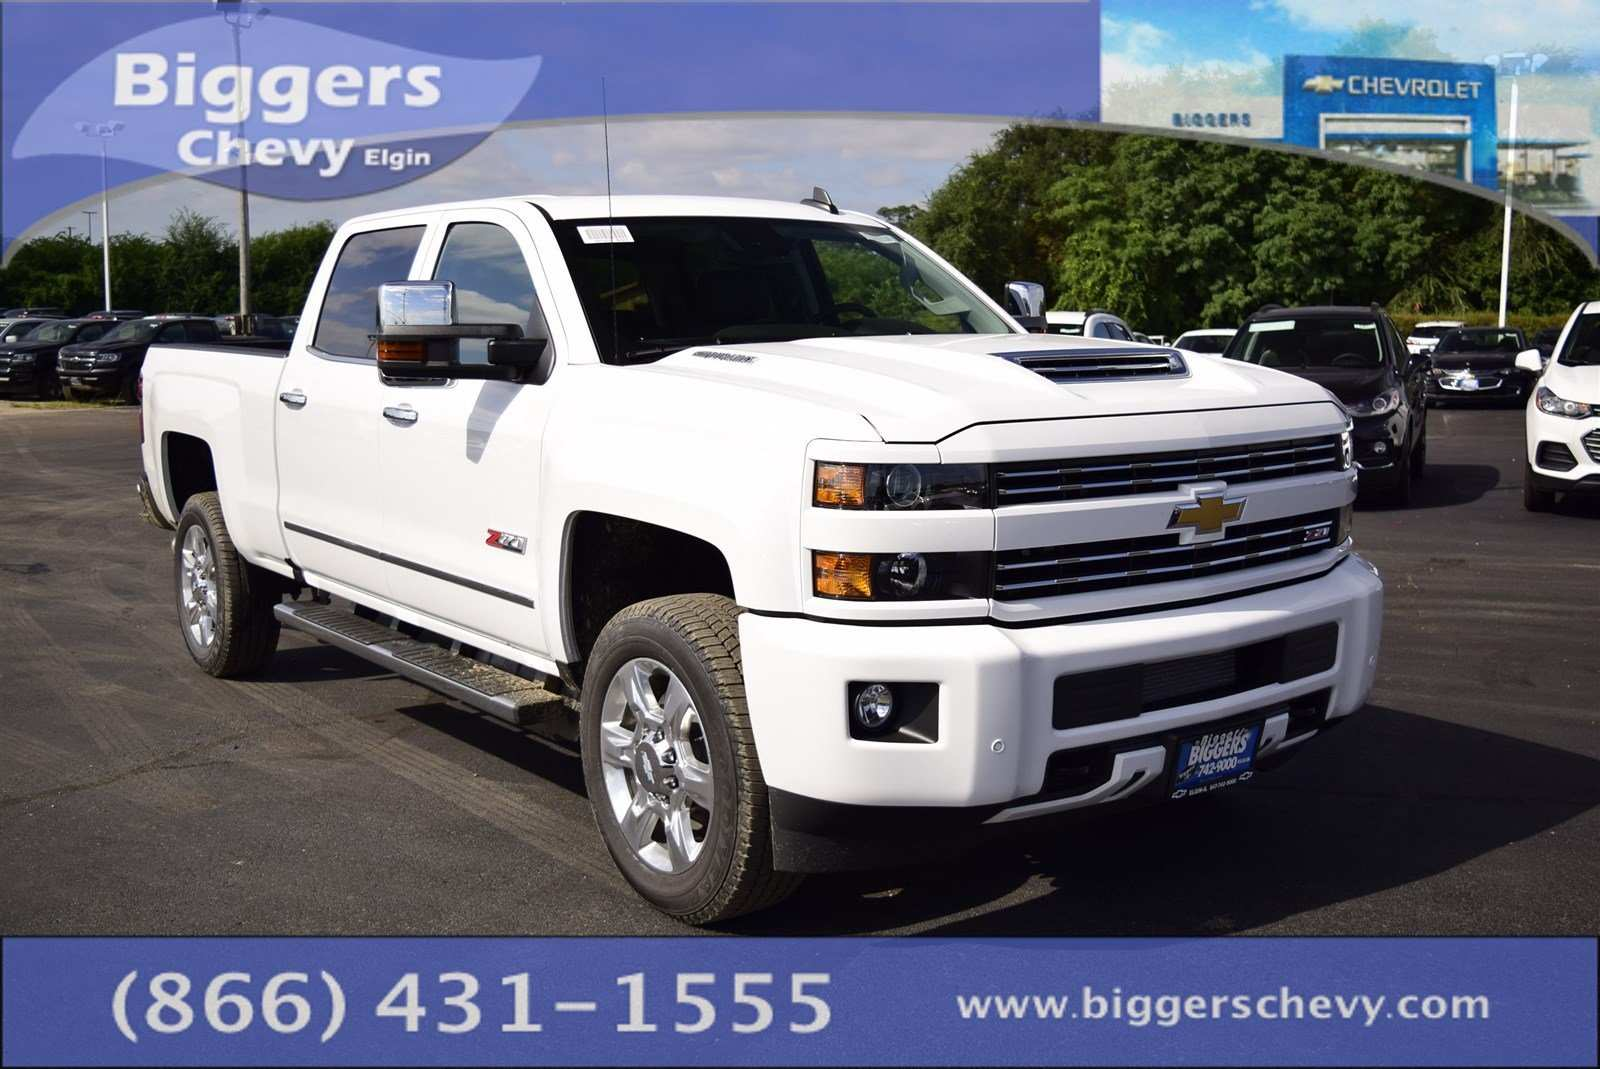 94 Gallery of 2019 Chevrolet Silverado Diesel Research New by 2019 Chevrolet Silverado Diesel